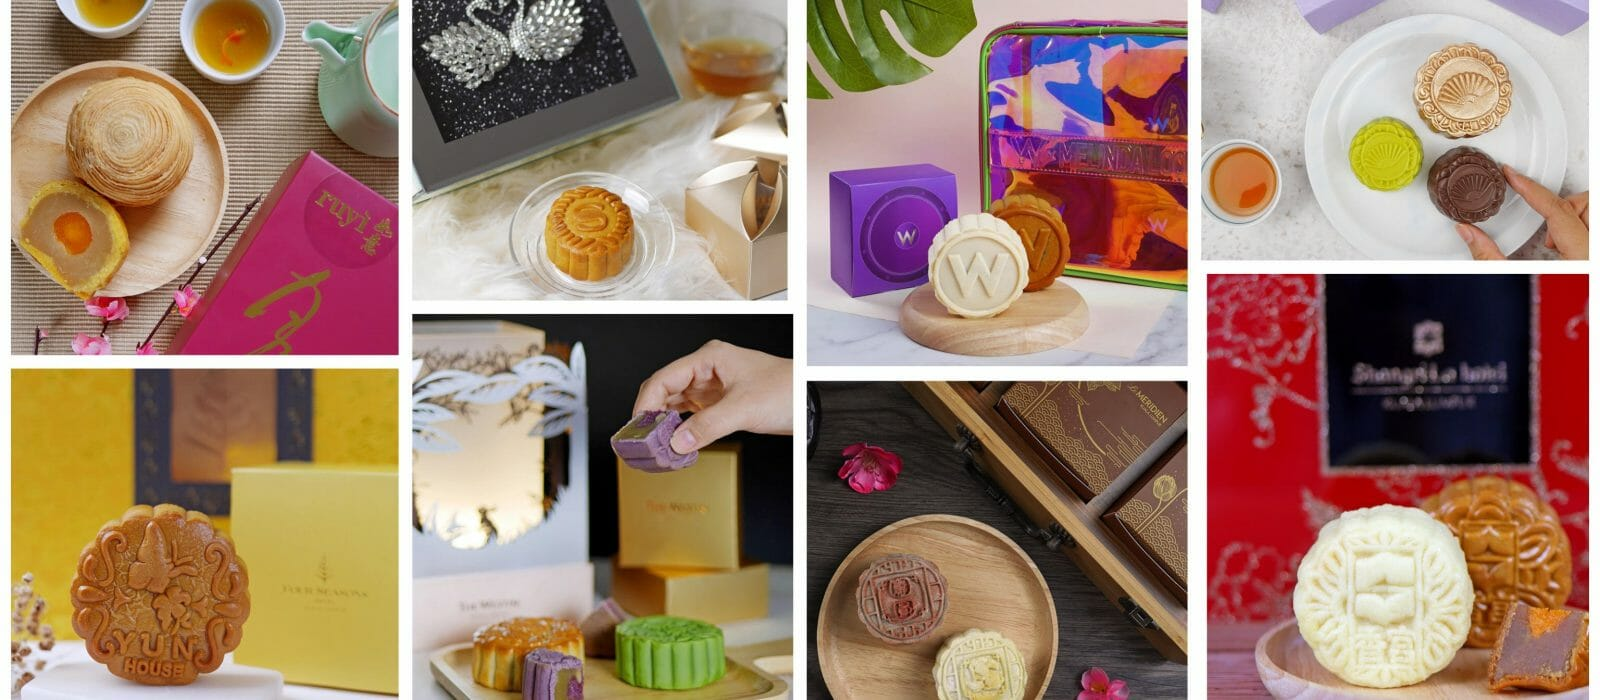 8 Mooncake Options to Consider this Mid-Autumn Festival